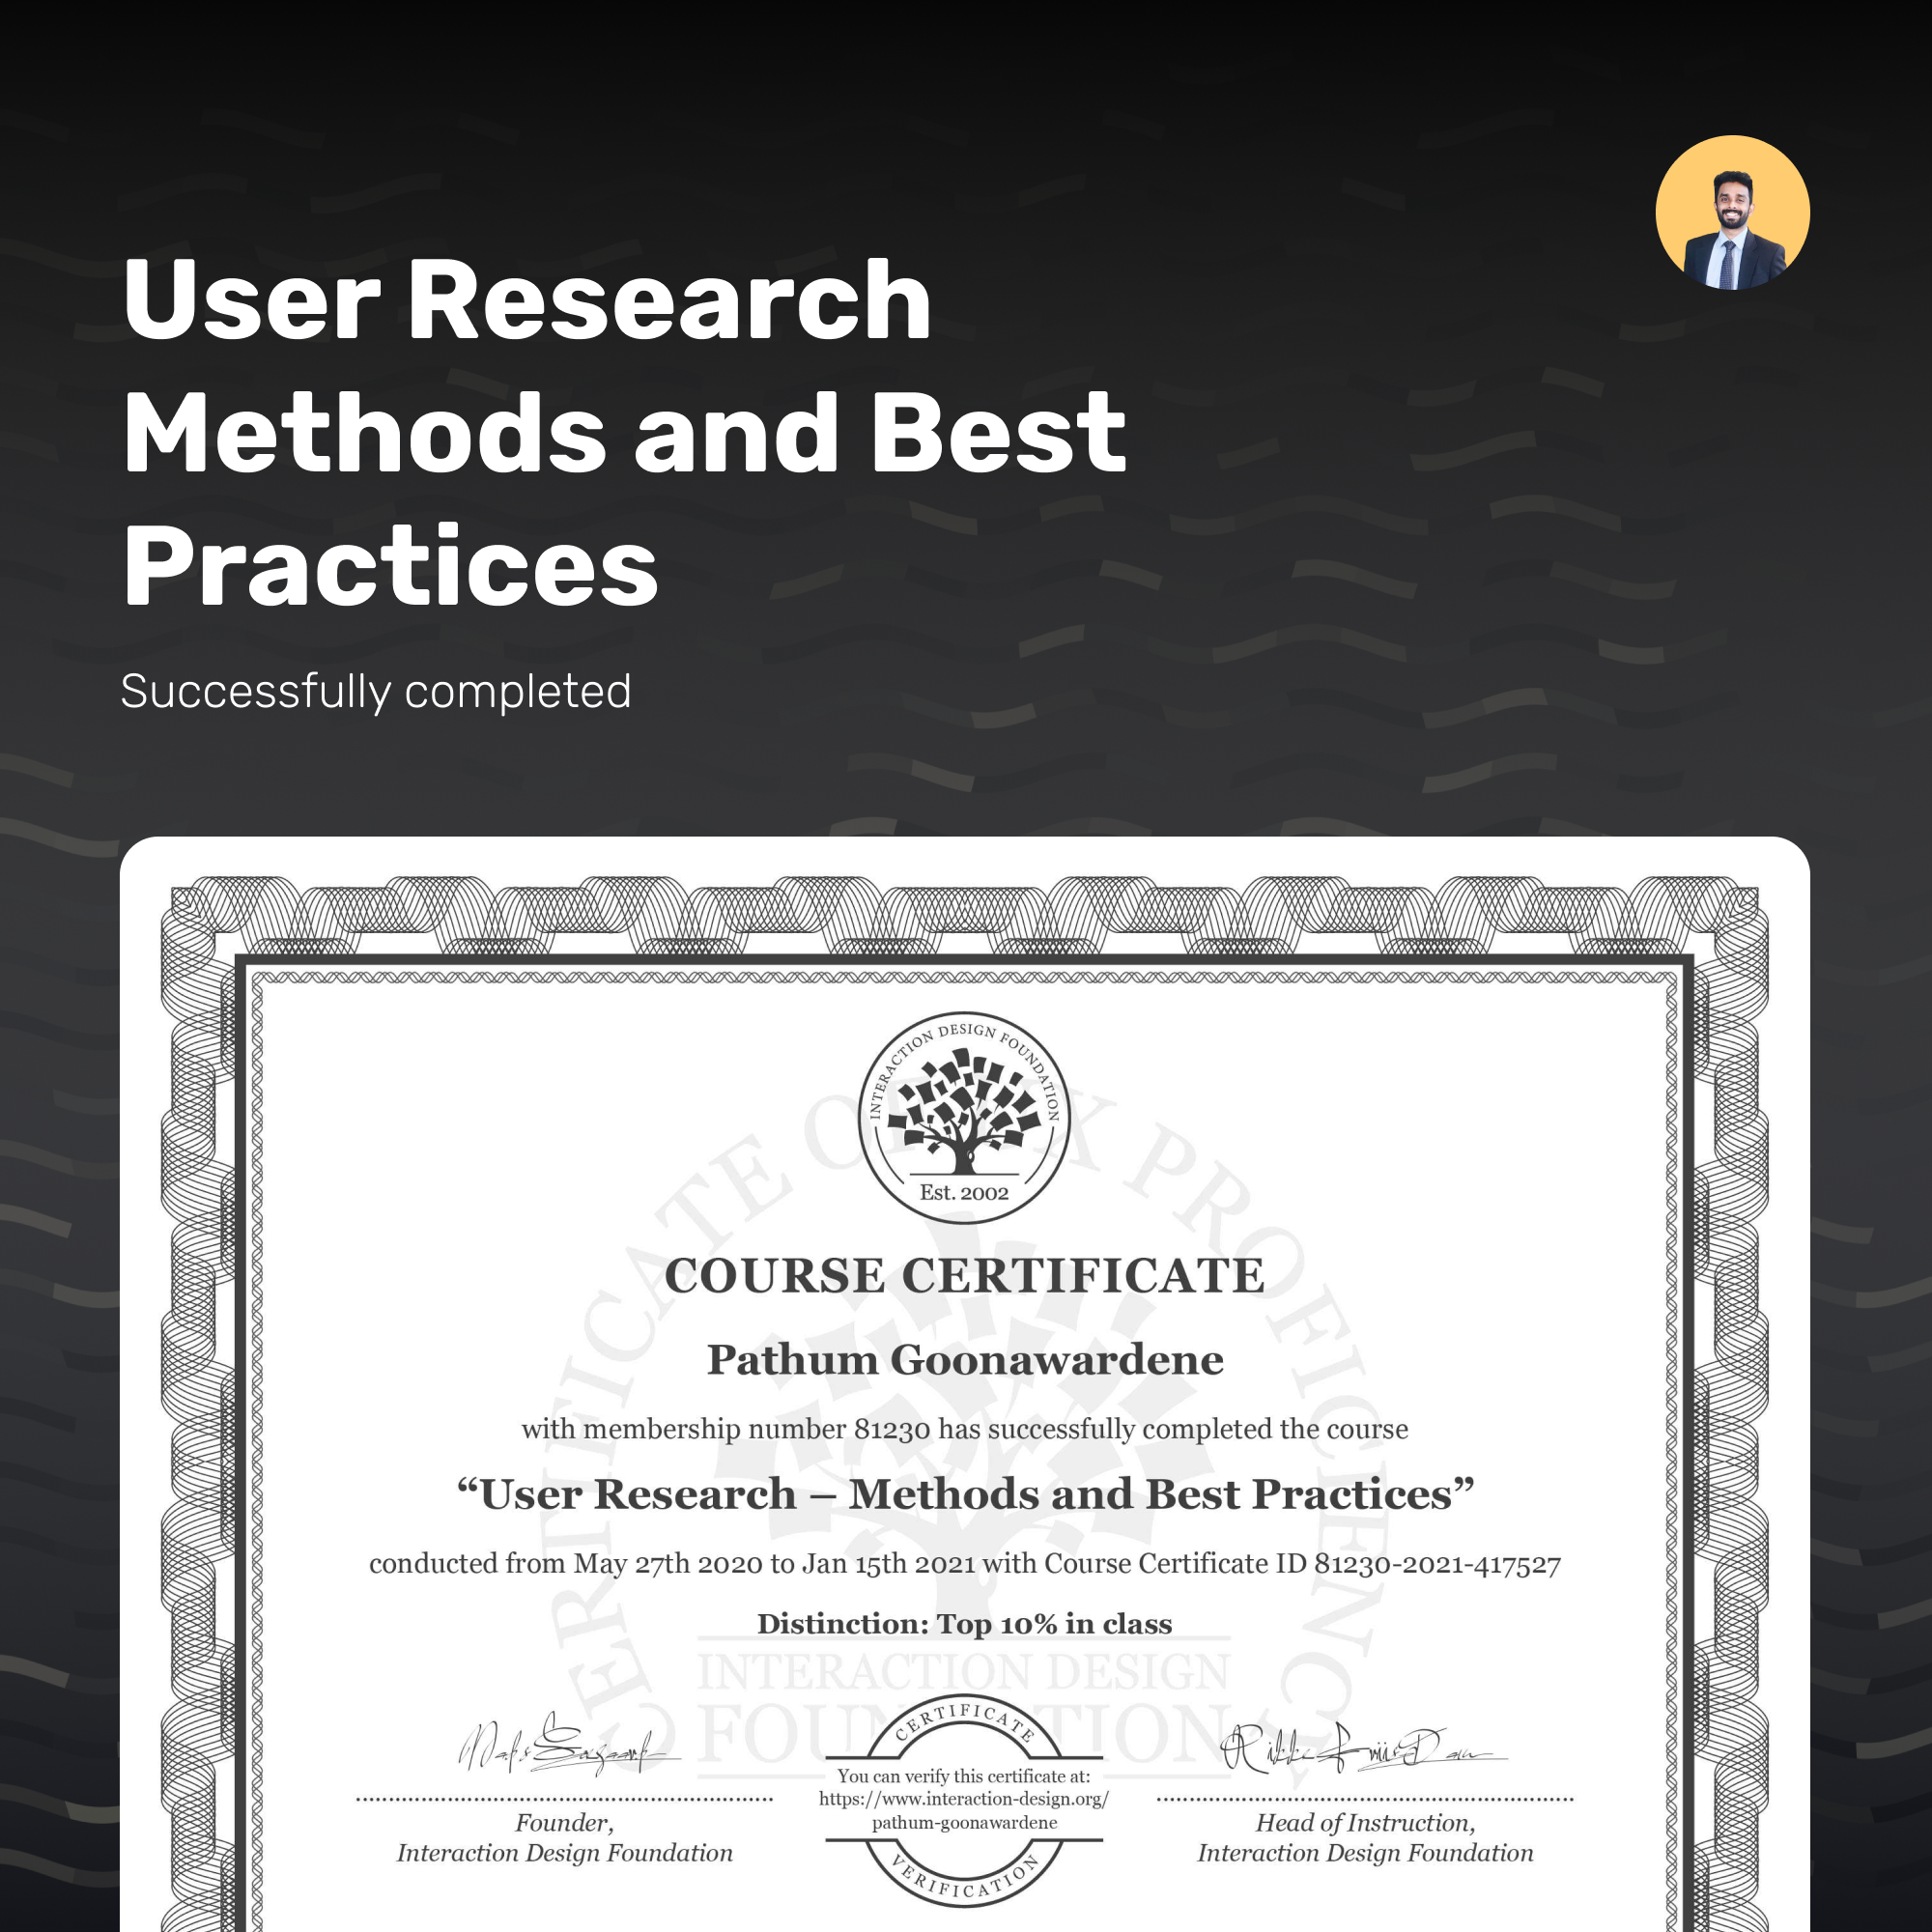 User Research Methods and Best practices